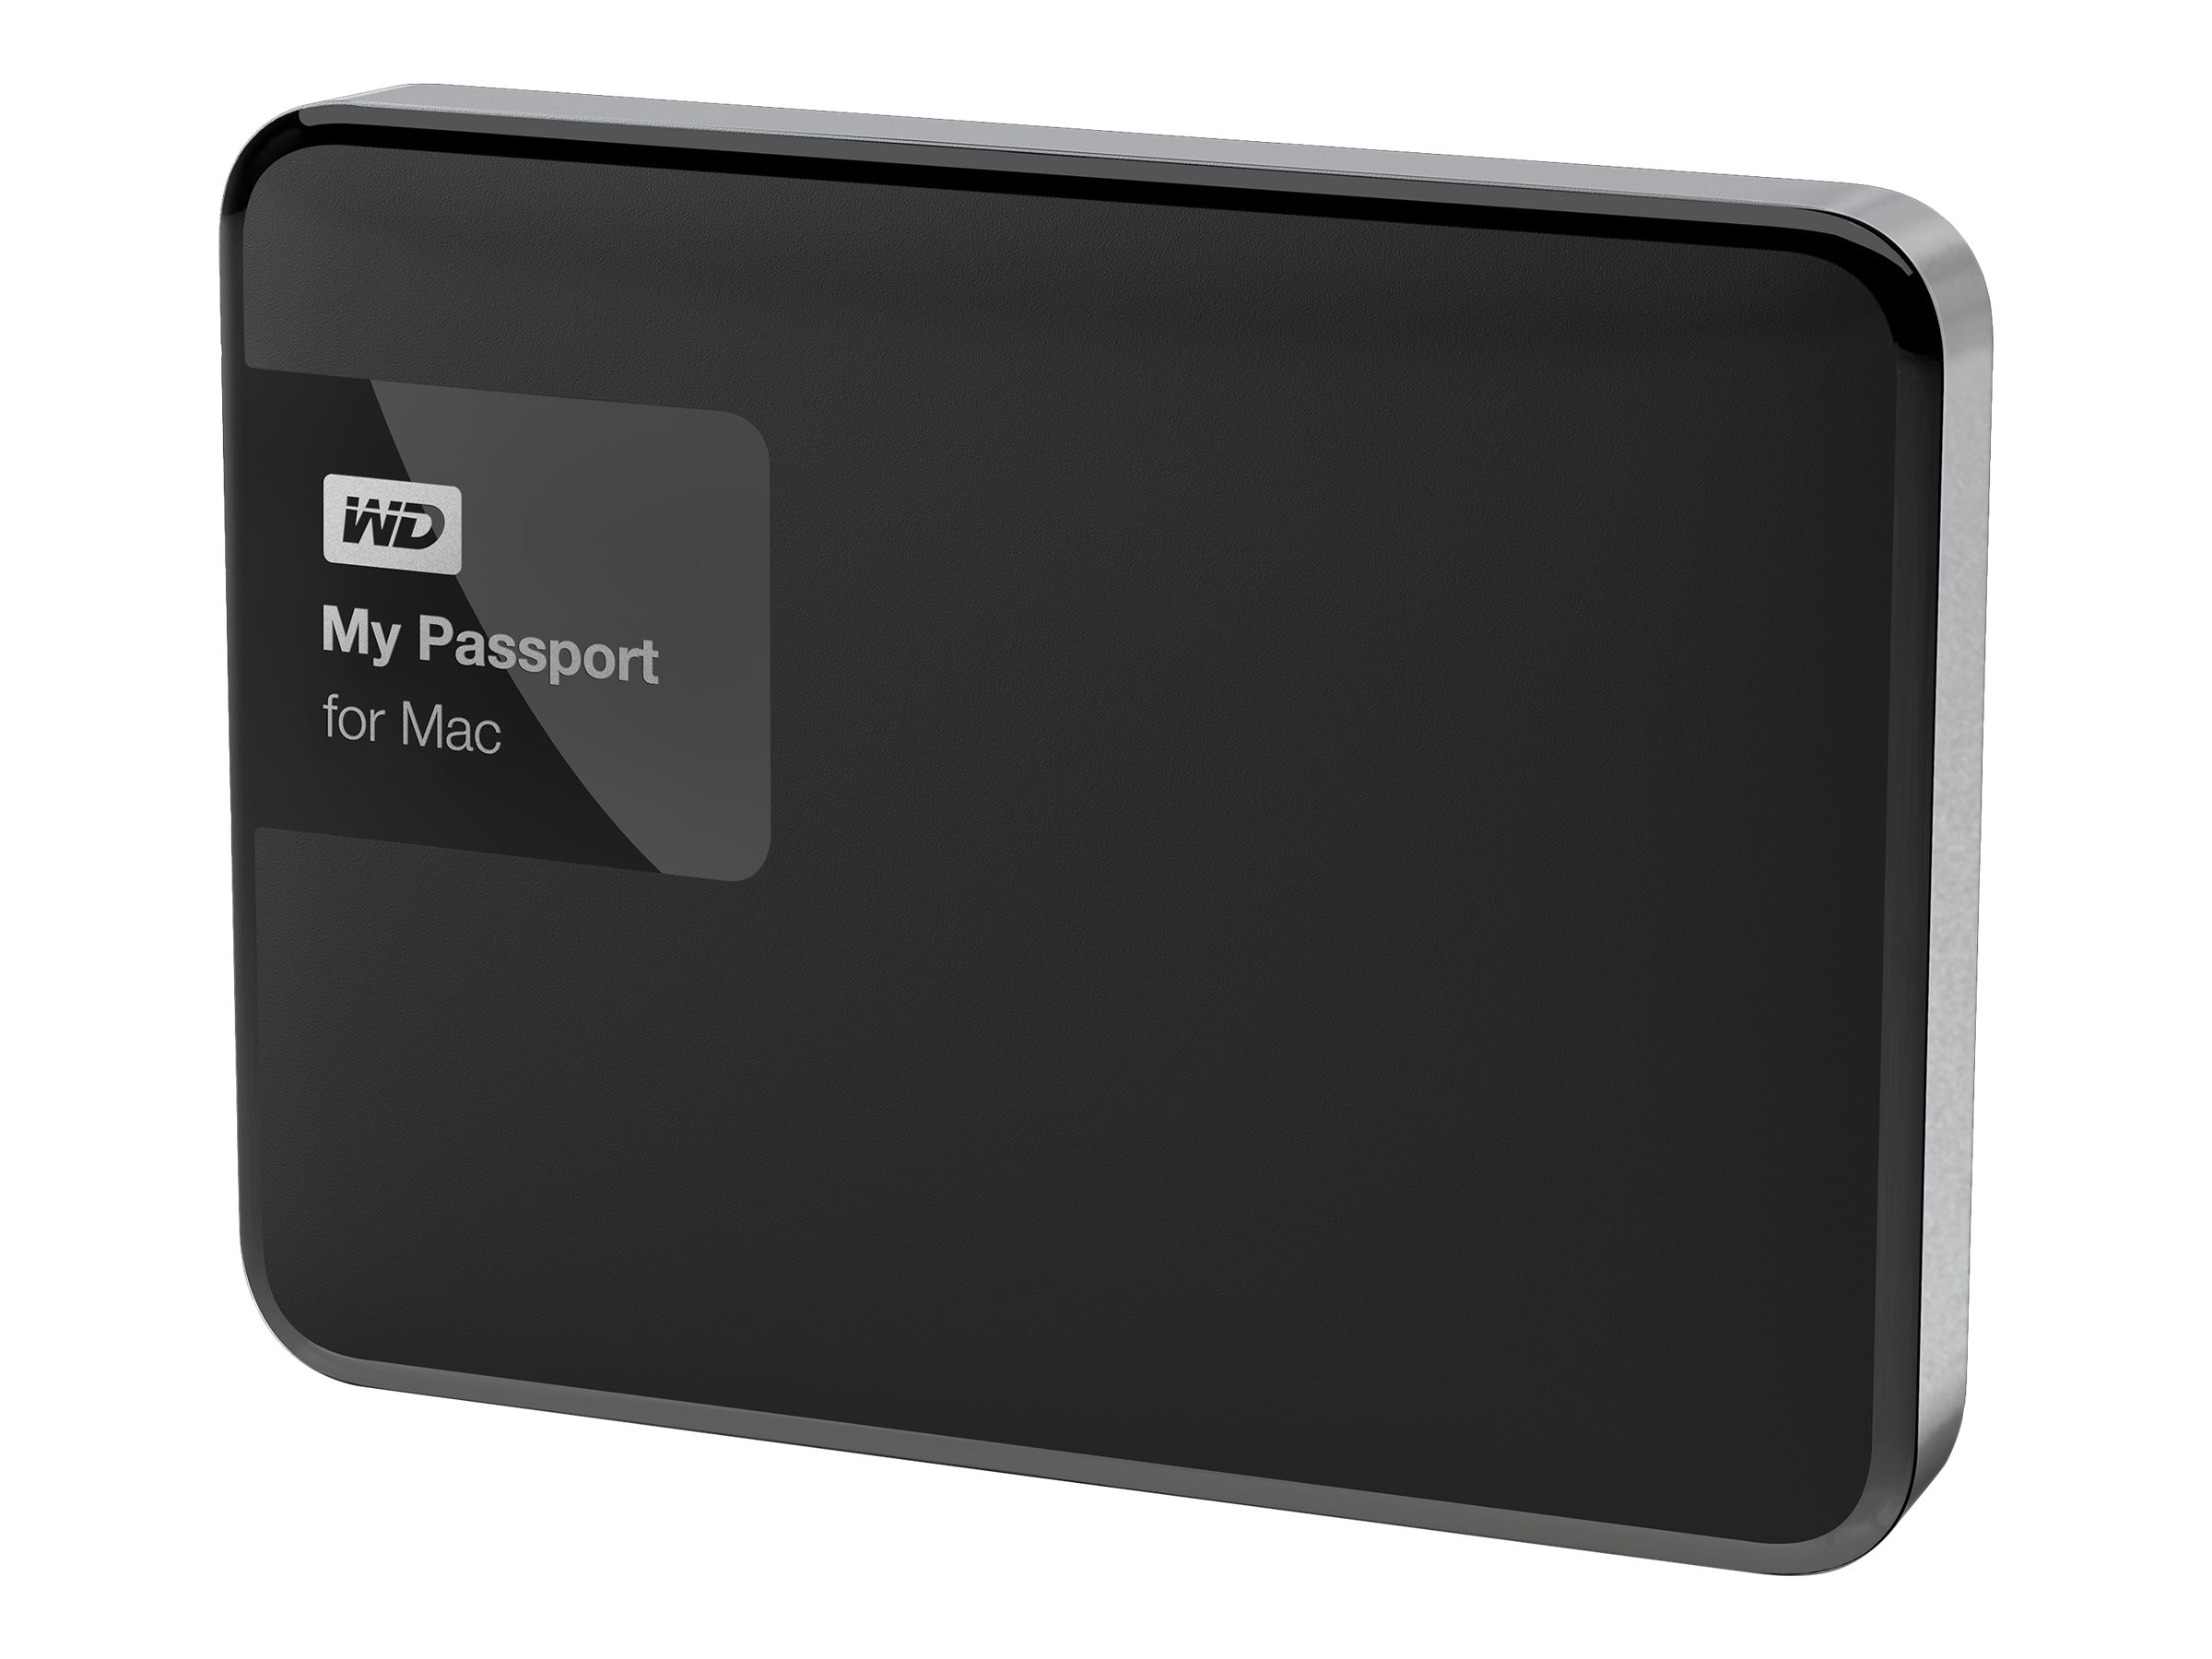 WD 1TB My Passport for Mac Black, WDBFKF0010BBK-WESN